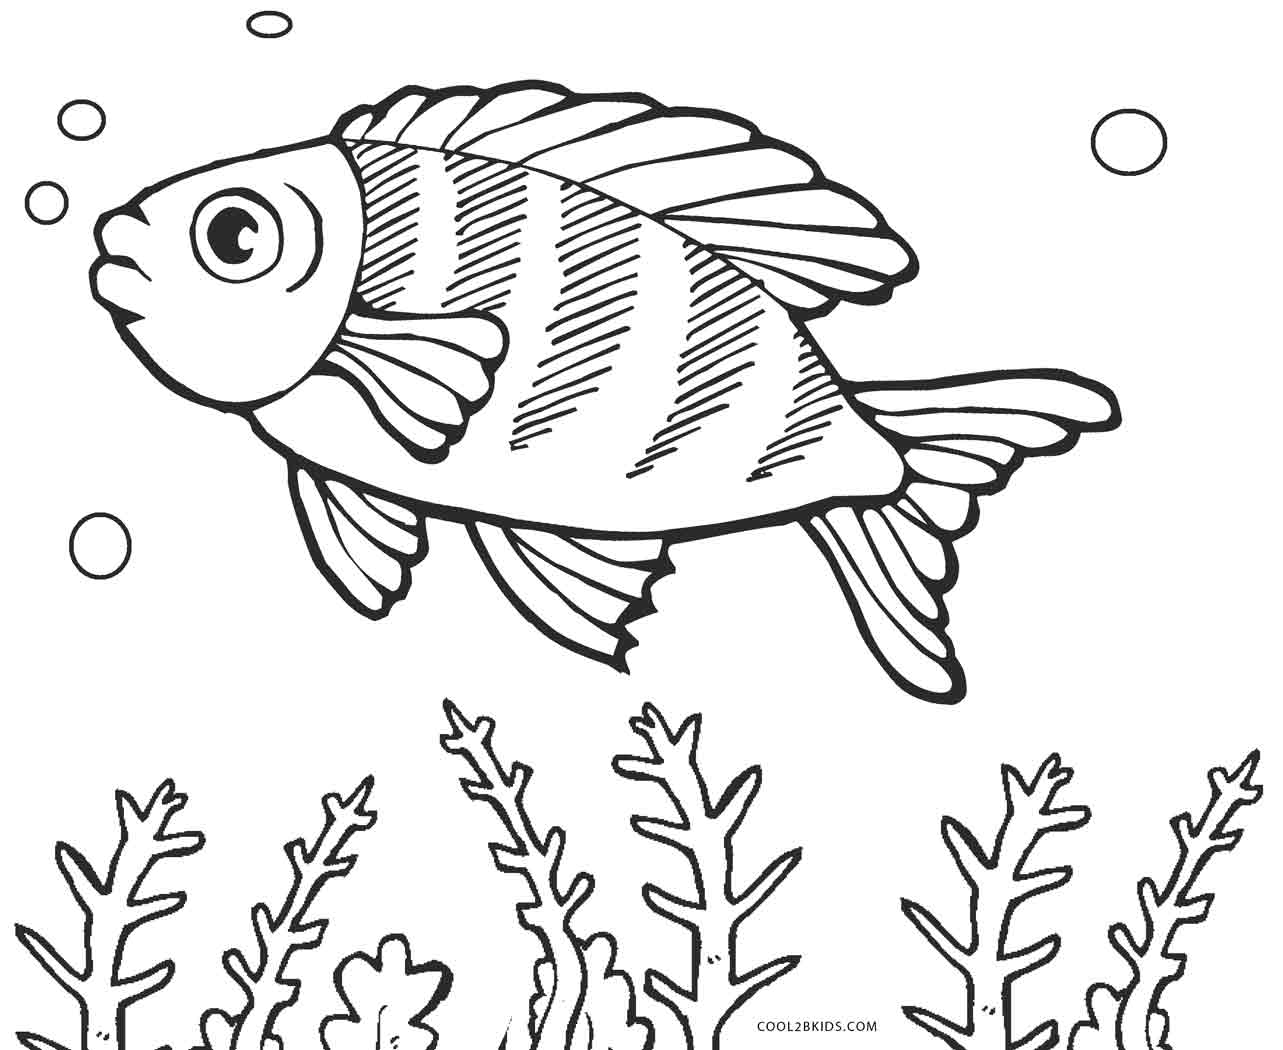 goldfish coloring printable goldfish coloring pages for kids coloring goldfish